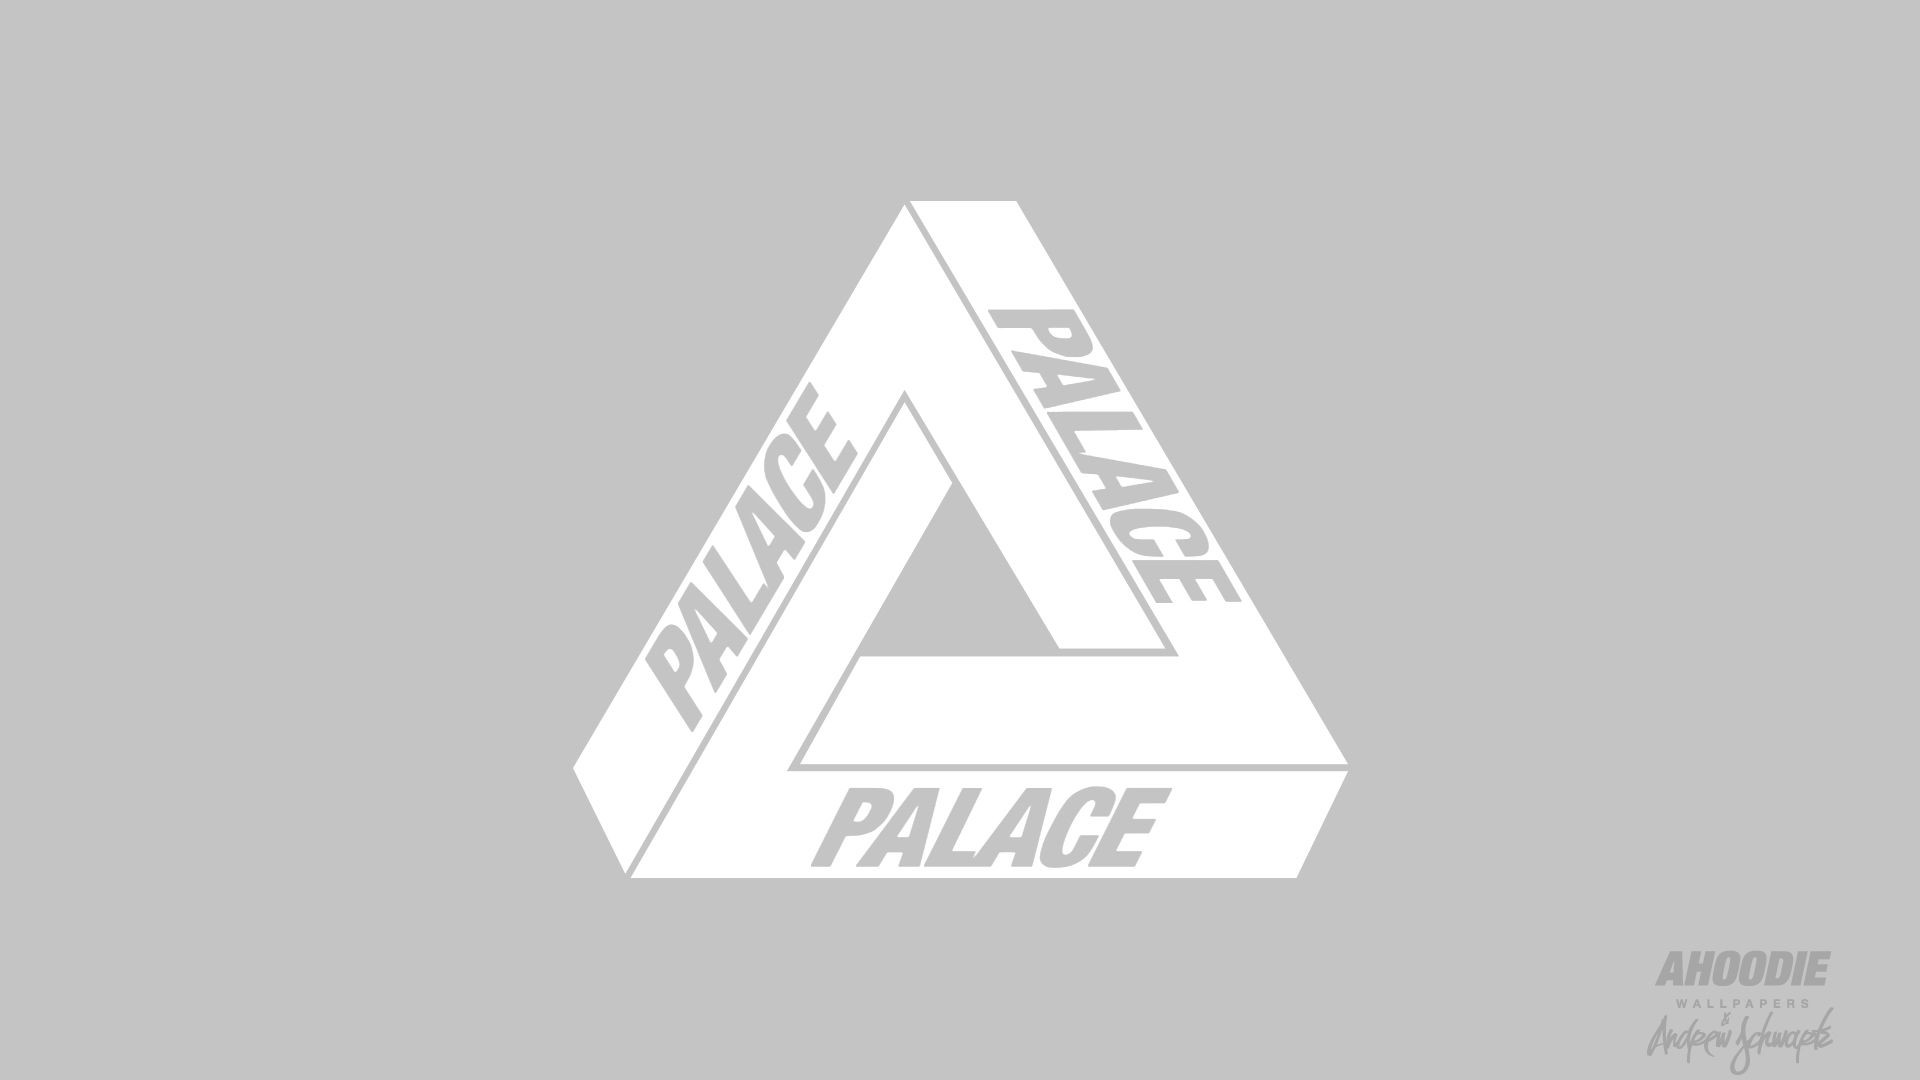 Res: 1920x1080, Palace skateboards!!!!! Love!